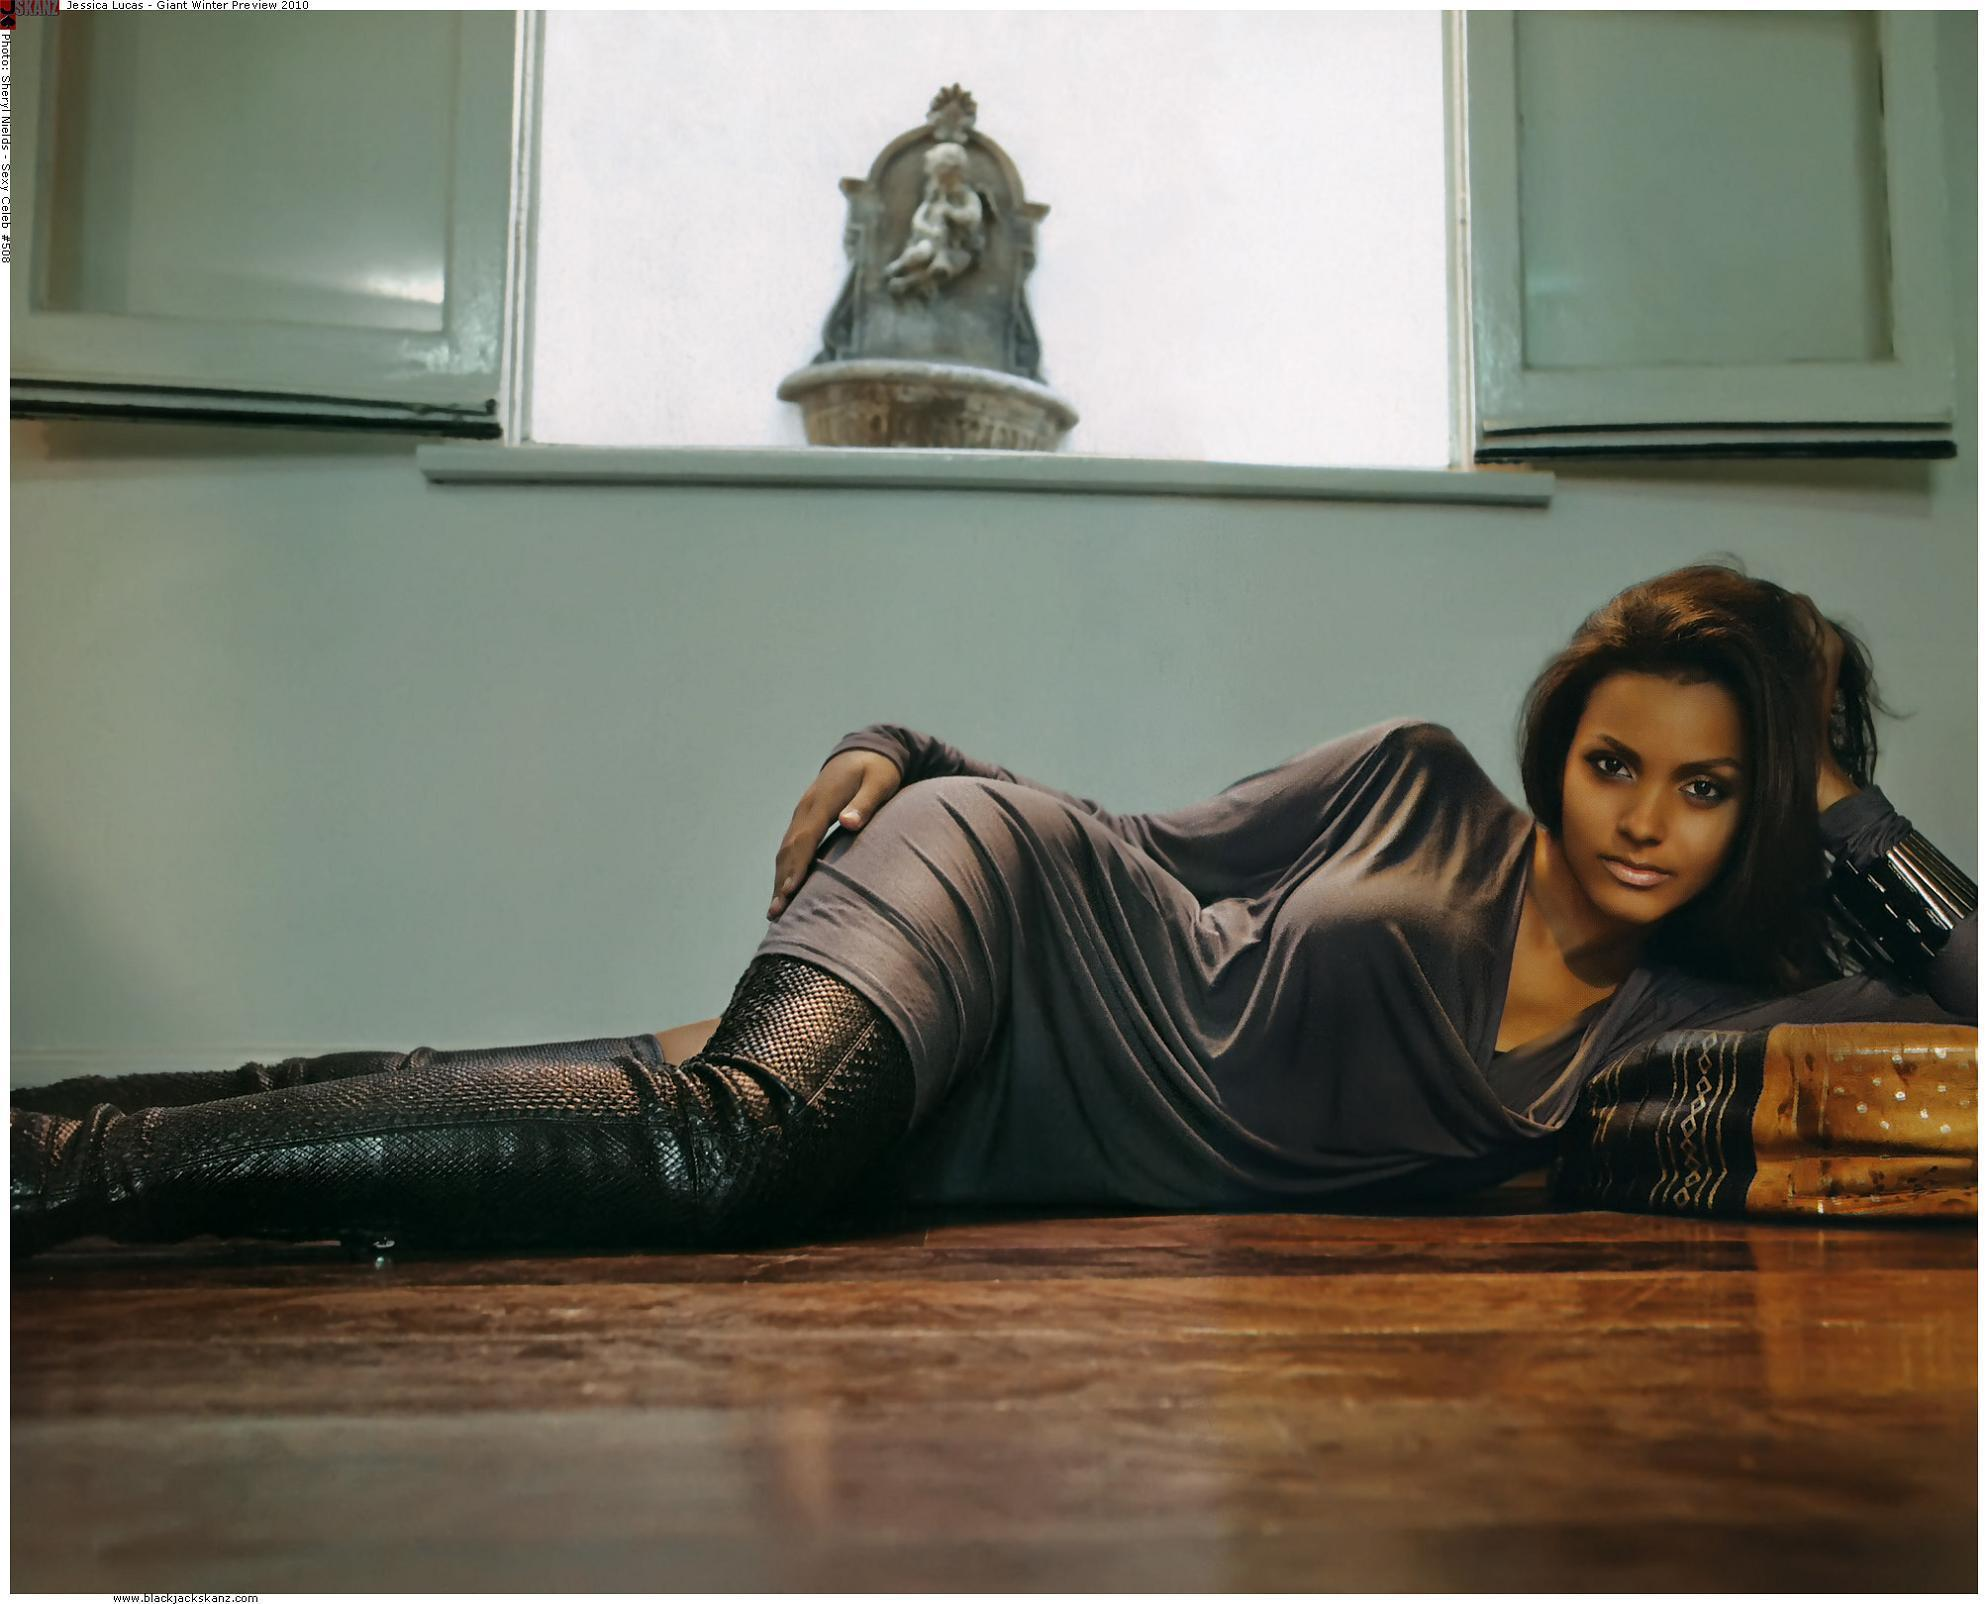 http://www.nubianplanet.com/beauty/jessica-lucas-is-one-hot-black-canadian-with-a-whip/